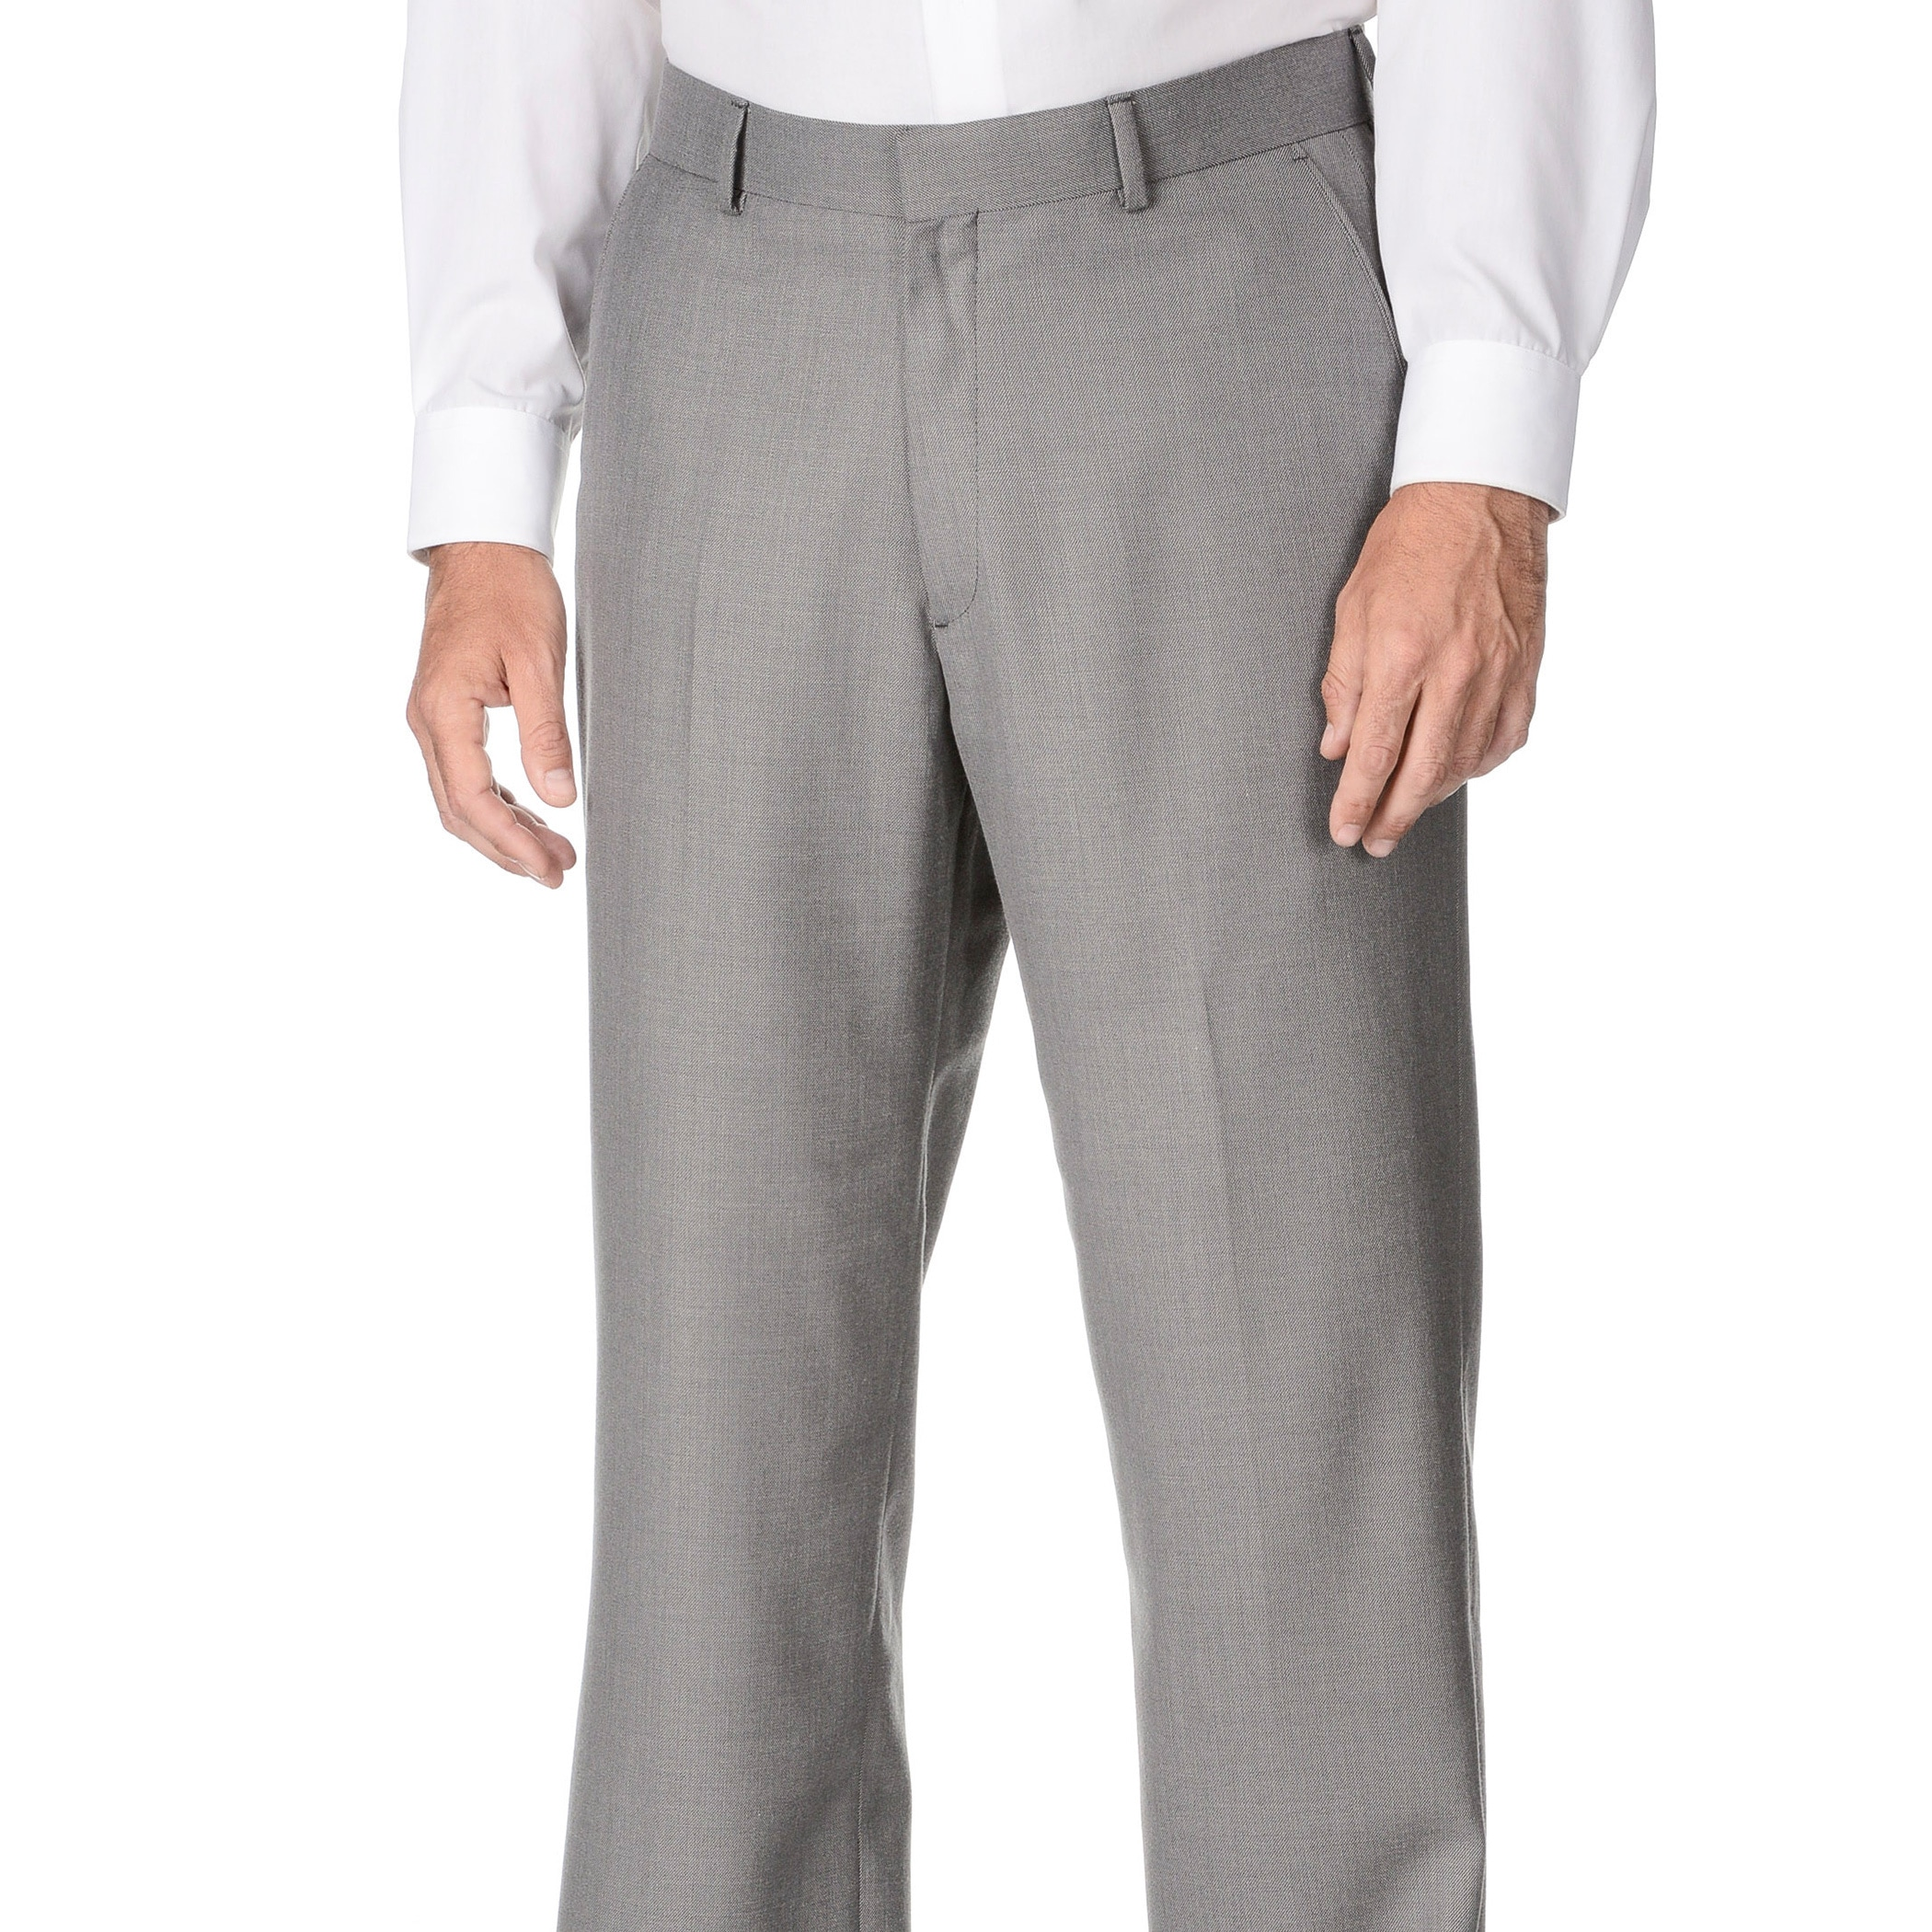 Overstock.com Marco Carelli Men's Grey Flat-front Suit Separate Dress Pant at Sears.com